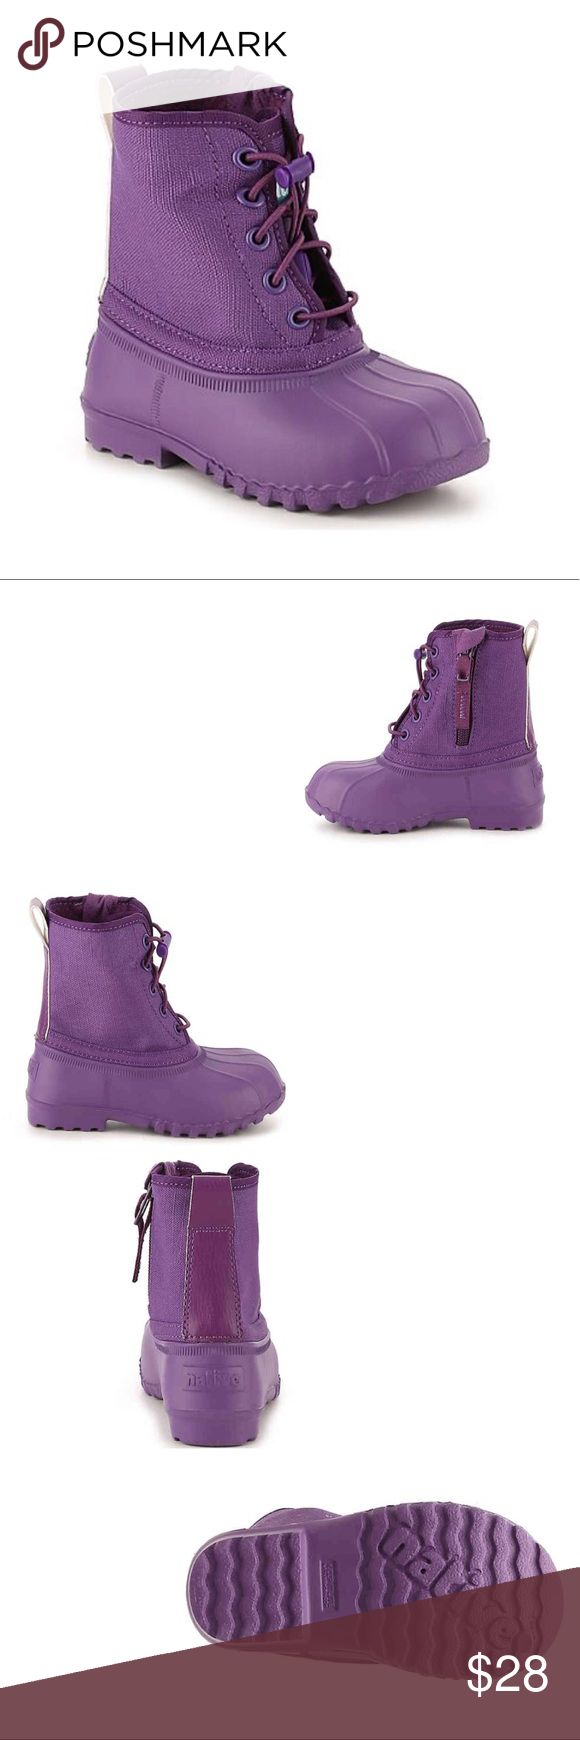 Native Jimmy Girls Toddler - Purple Rain Boots Like new used once DESCRIPTION: Keep her moving and grooving with the Jimmy kids boots from Native. Snow, rain, or sunny skys, the light weight design on this cute and practical duck boot will leave her smiling from ear to ear! FEATURES Printed canvas and Keep It Lite™ EVA upper Side zip closure Drawstring lace-up with toggle closure Washable and water resistant Heel pull tab Massaging nubs on the footbed to stimulate circulation Keep It Lite…